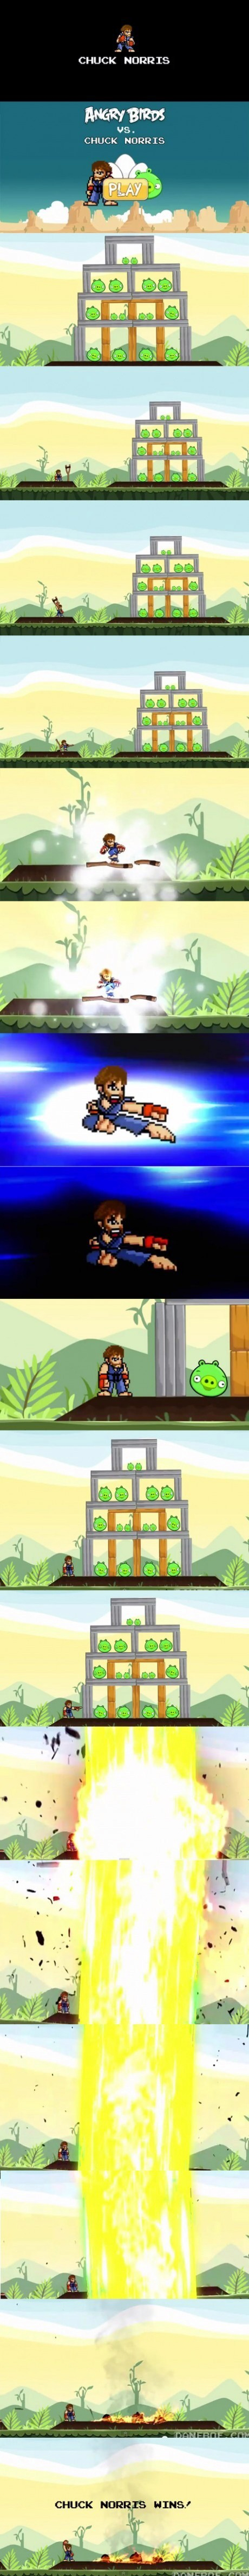 Chuck norris and angry birds